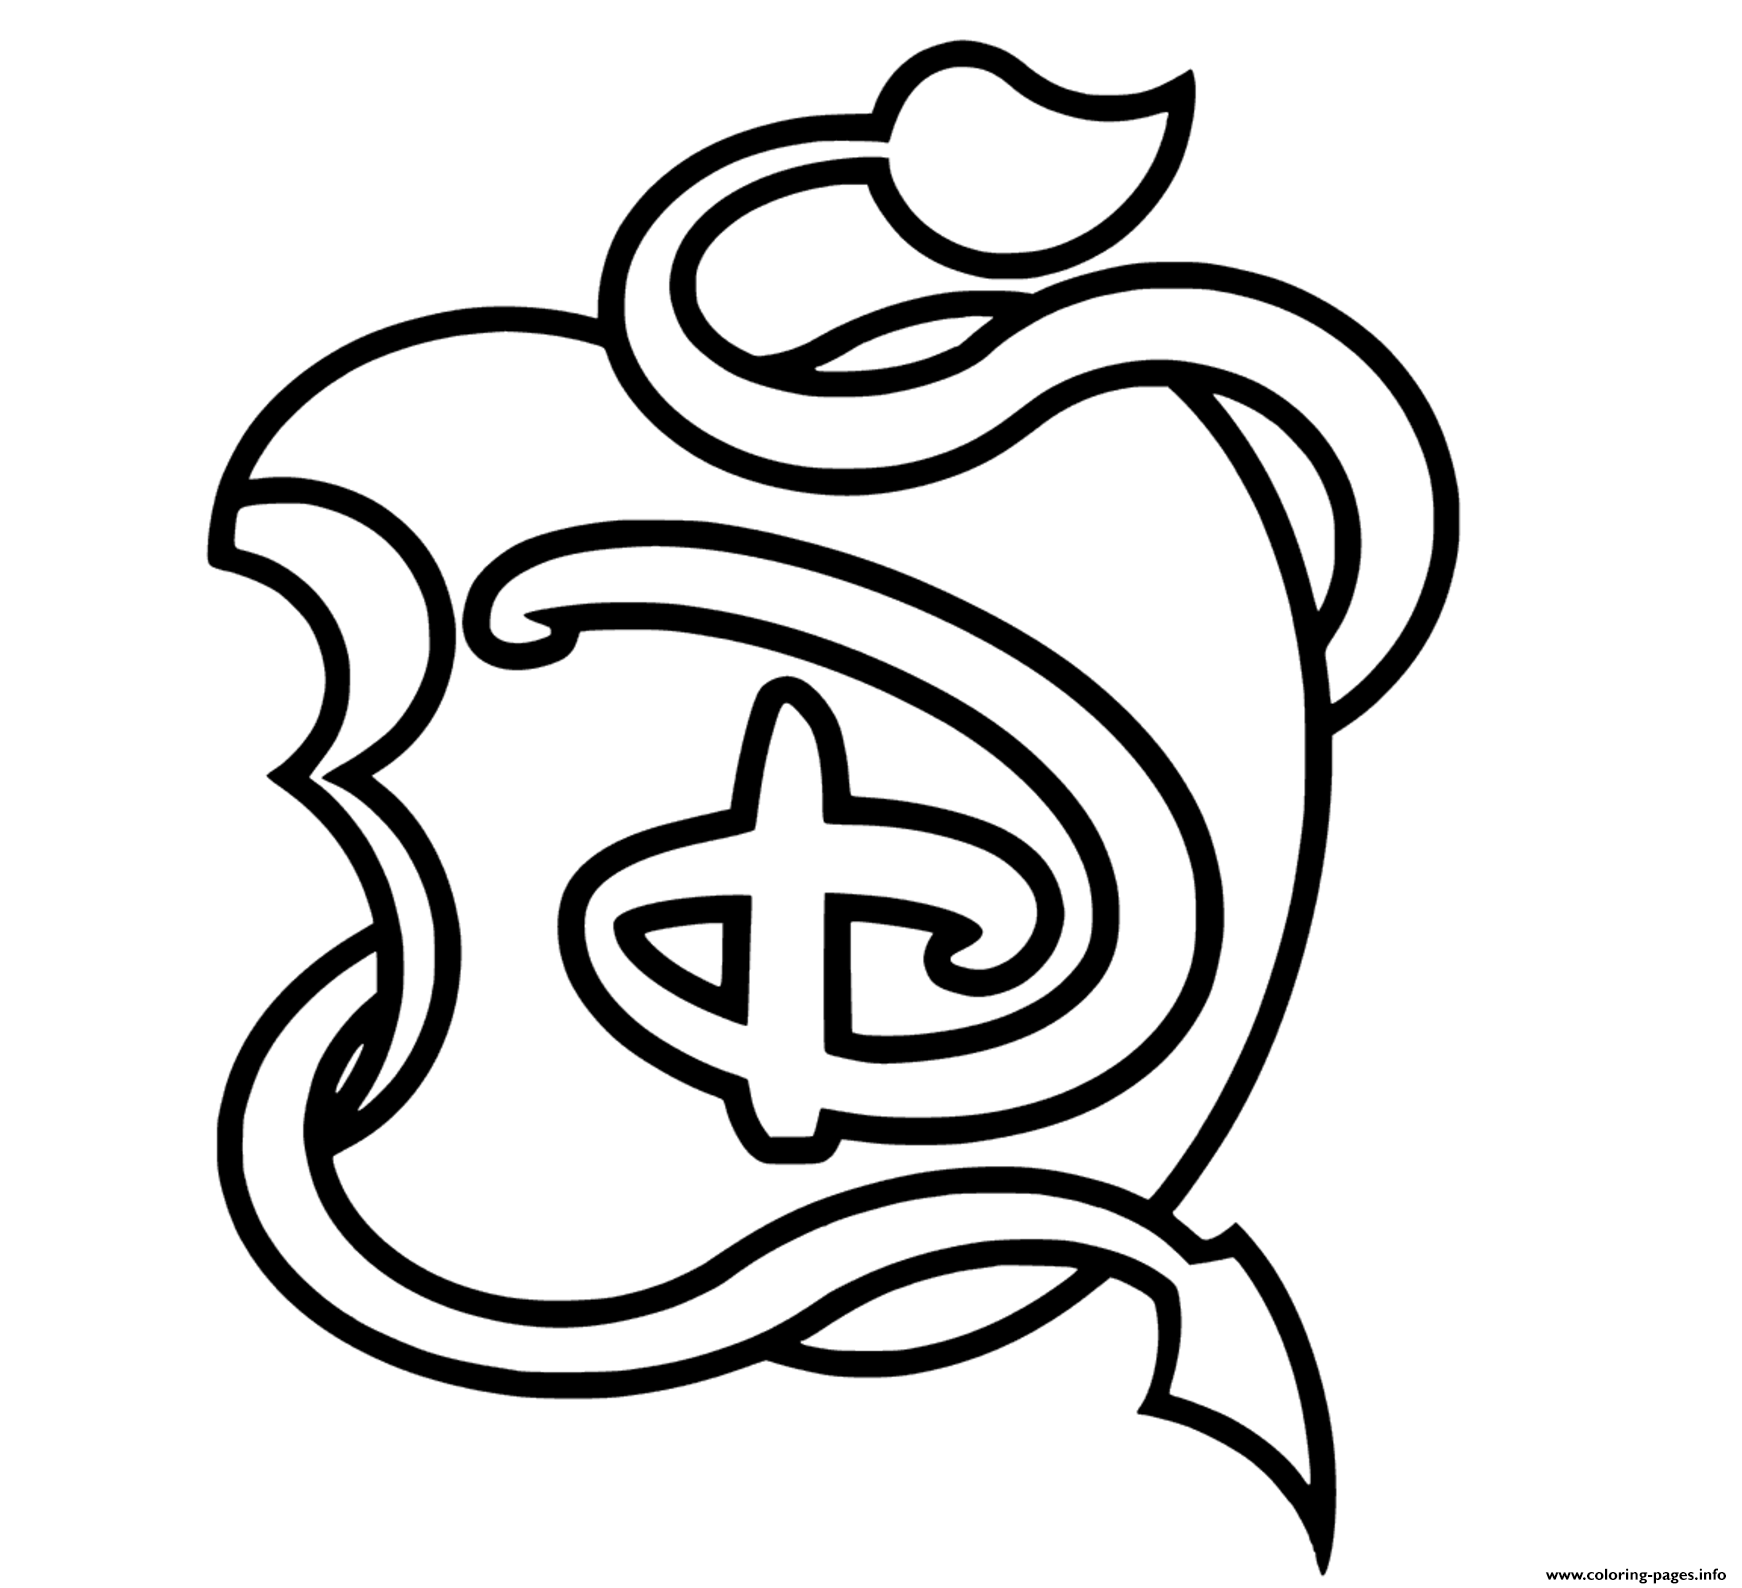 Print The Descendants 3 From Disney Coloring Pages Descendants Coloring Pages Disney Coloring Pages Printables Disney Coloring Pages